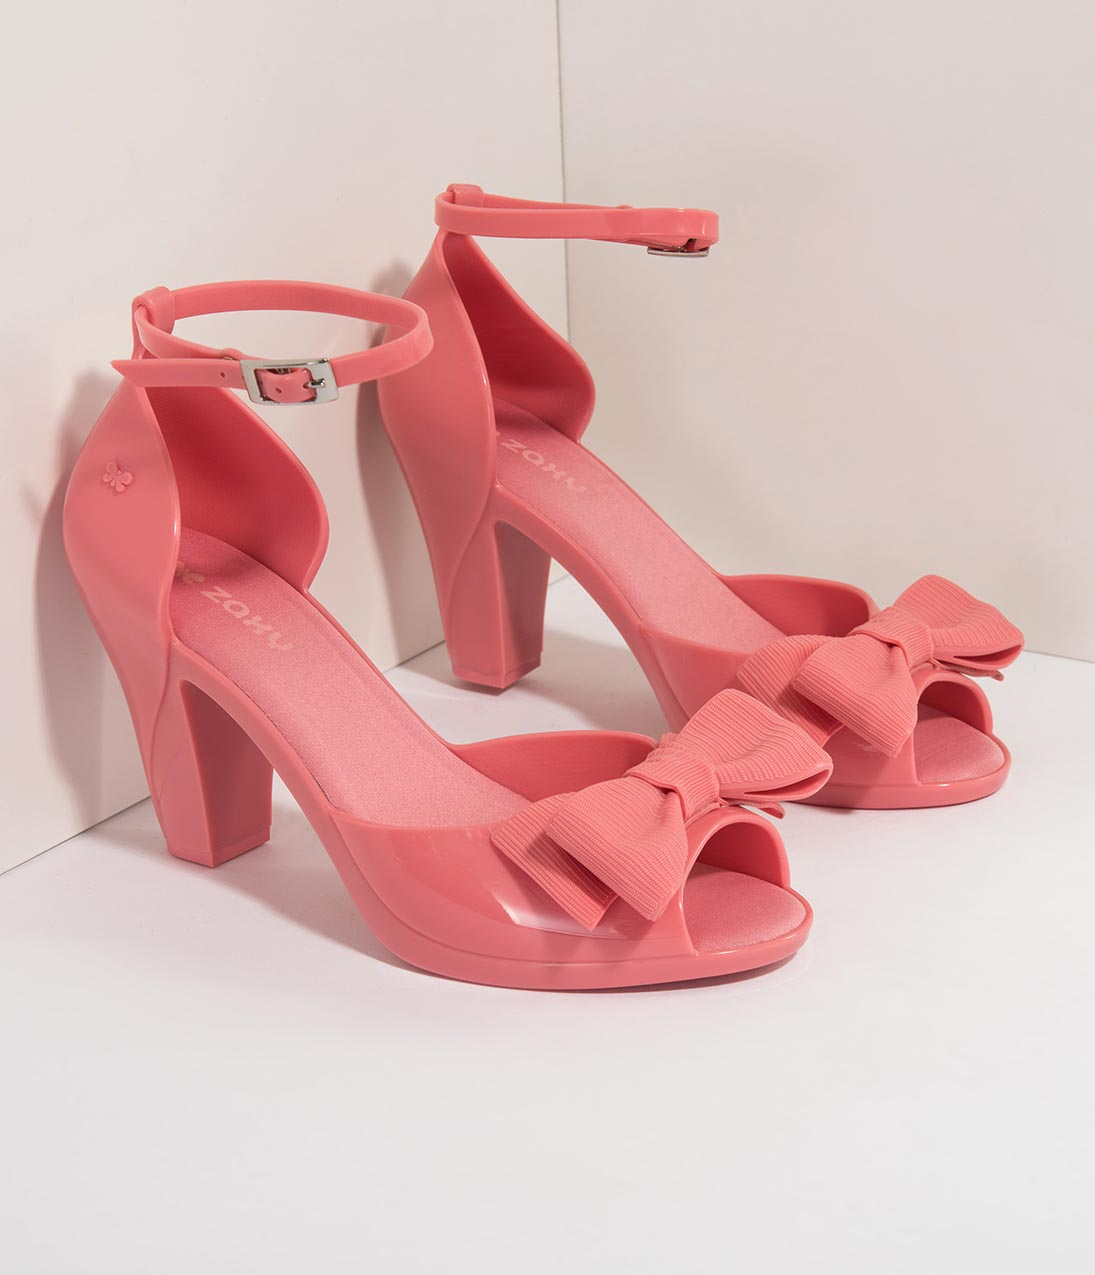 1950s Style Shoes | Heels, Flats, Saddle Shoes Pink Molded Bow Peep Toe DOrsay Diva Heels $48.00 AT vintagedancer.com